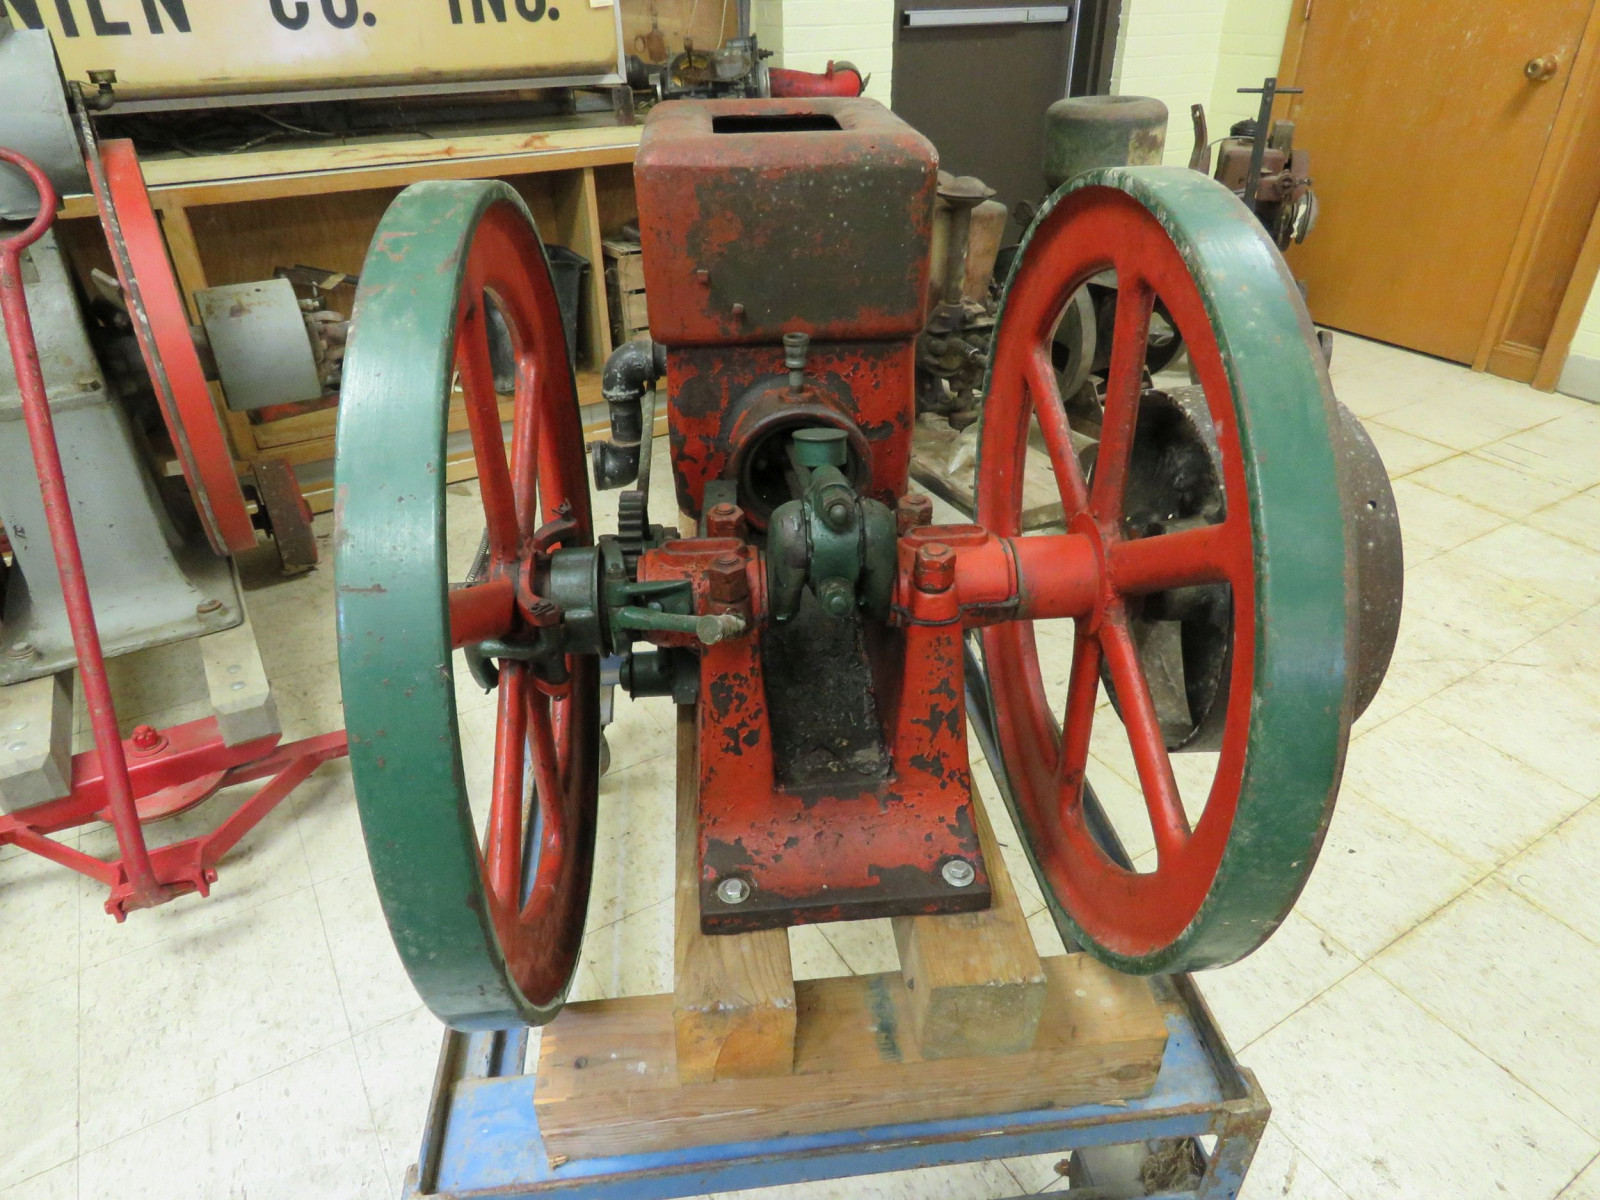 Meco 3HP Stationary Gas Engine - Image 3